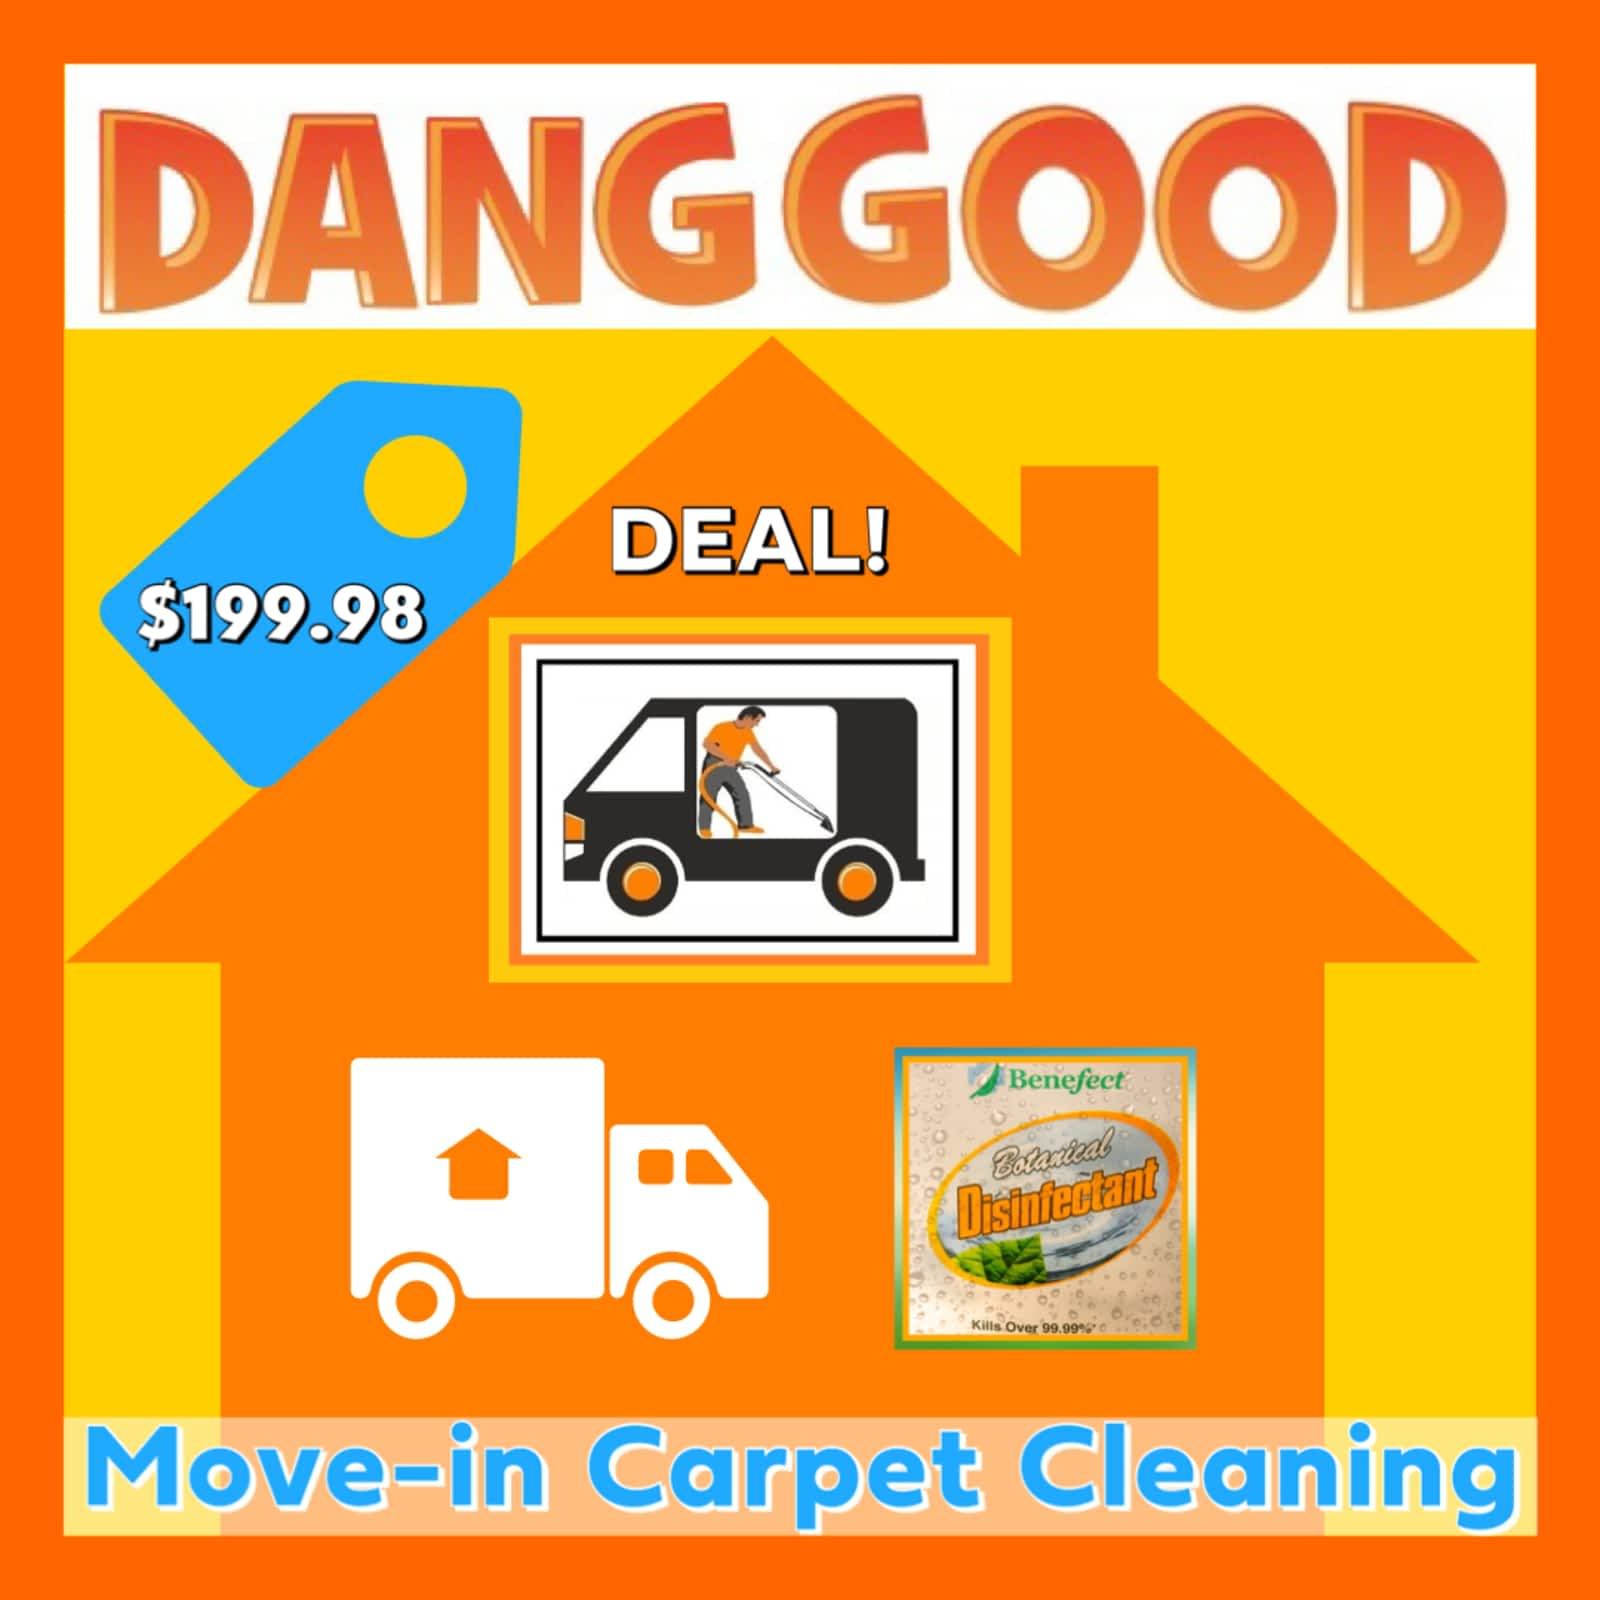 Dang Good Carpet and Furnace Cleaning